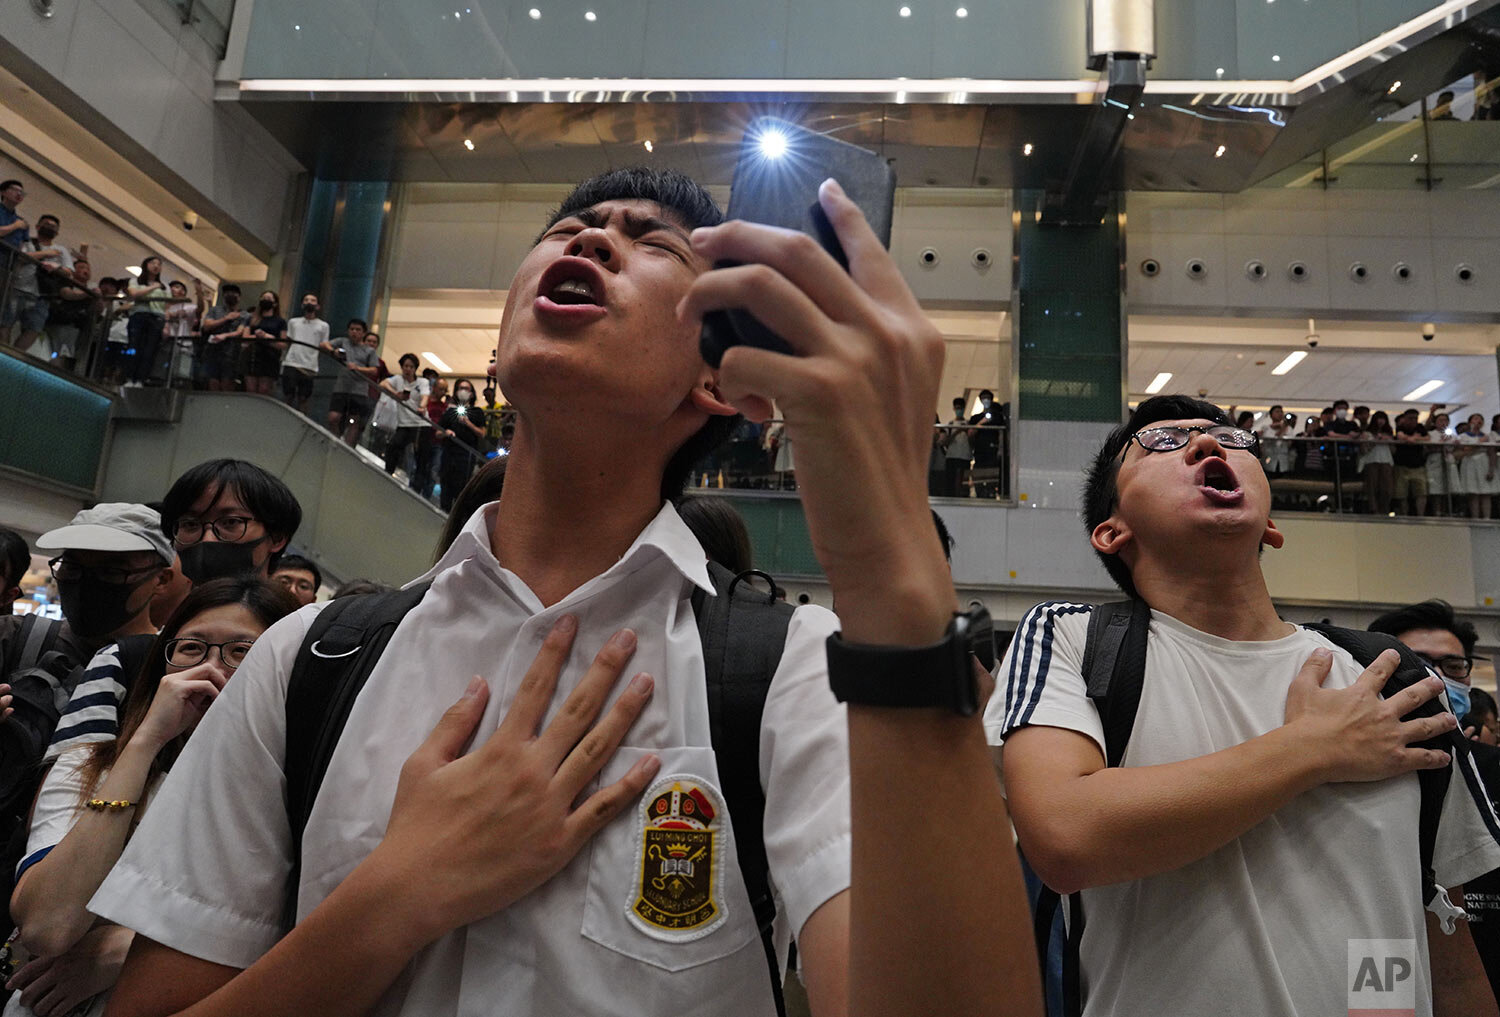 "Local residents sing a theme song written by protesters called""Glory be to thee"" at a shopping mall in Hong Kong Wednesday, Sept. 11, 2019. Hong Kong Chief Executive Carrie Lam reassured foreign investors Wednesday that the Asian financial hub can rebound from months of protests, despite no sign that the unrest will subside. (AP Photo/Vincent Yu)"